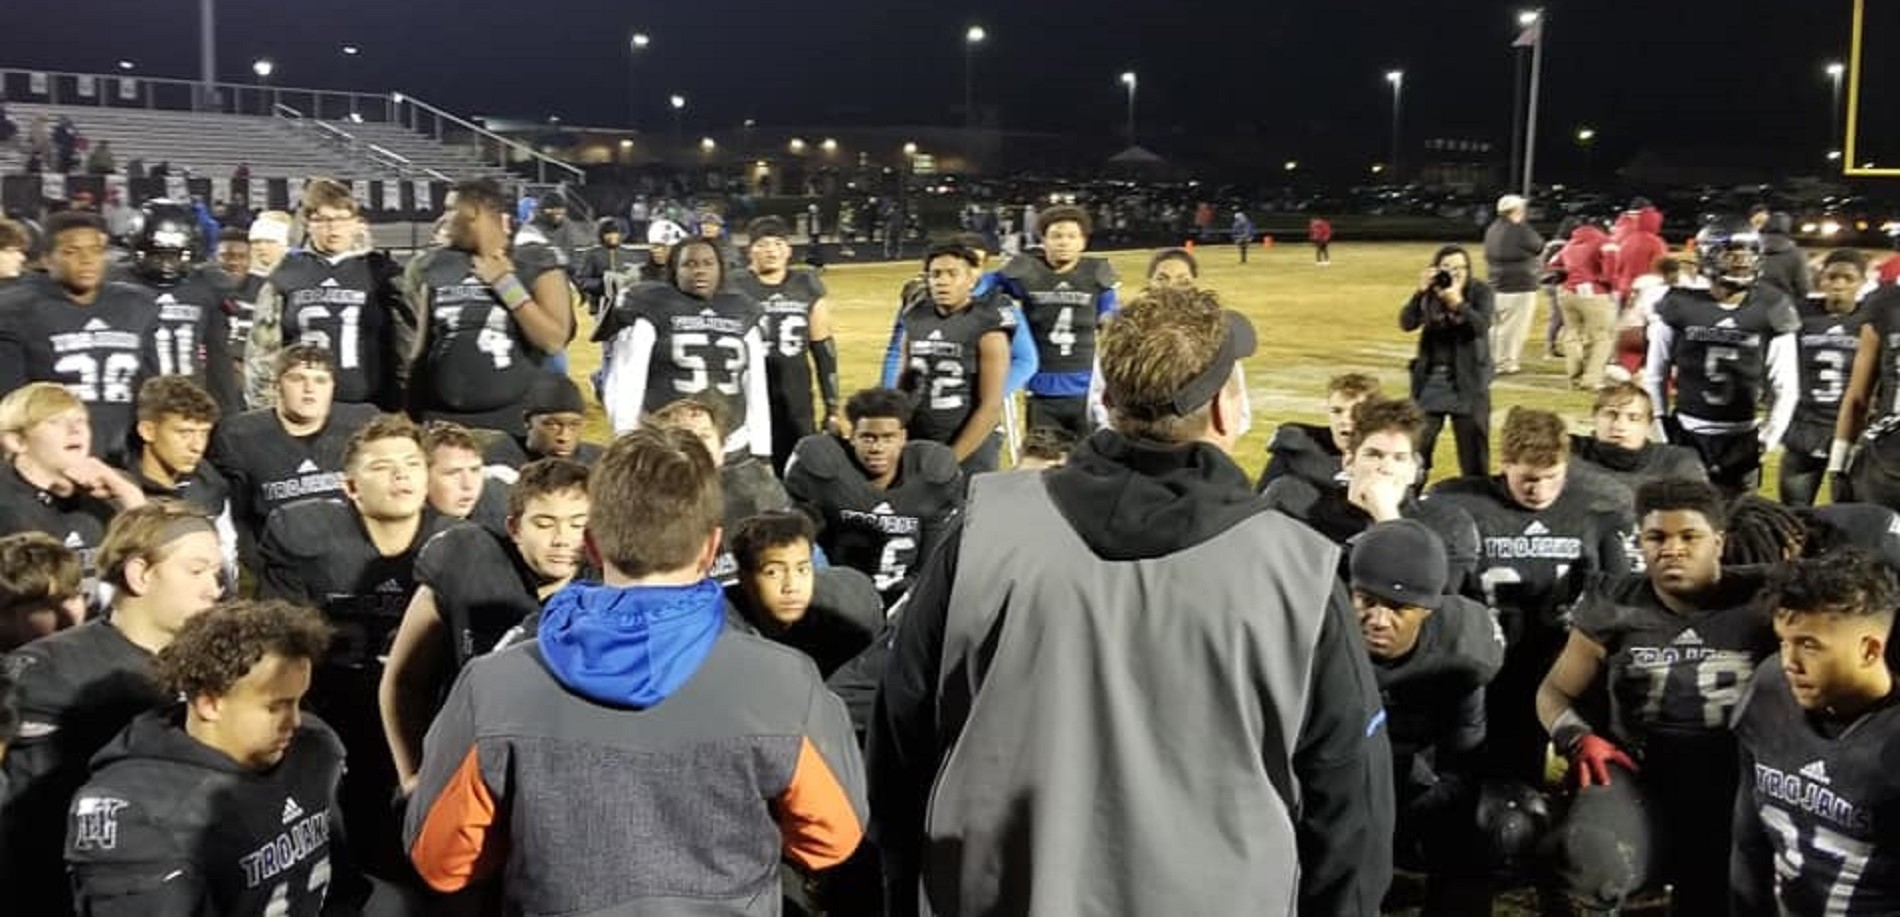 The North Hardin High School football team finished the season with a district and regional championship and a 13-1 season.